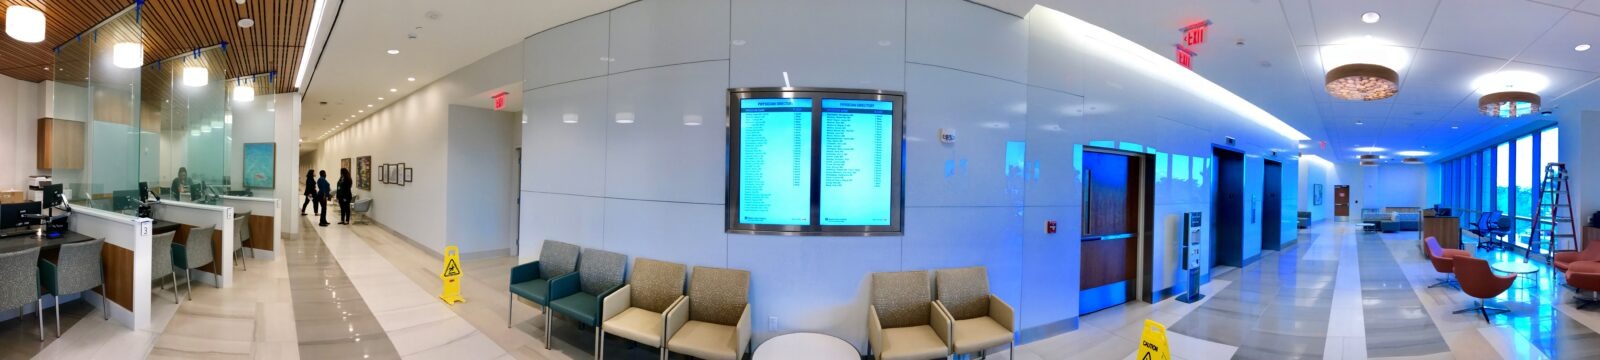 MCI RESEARCH 2ND FLOOR